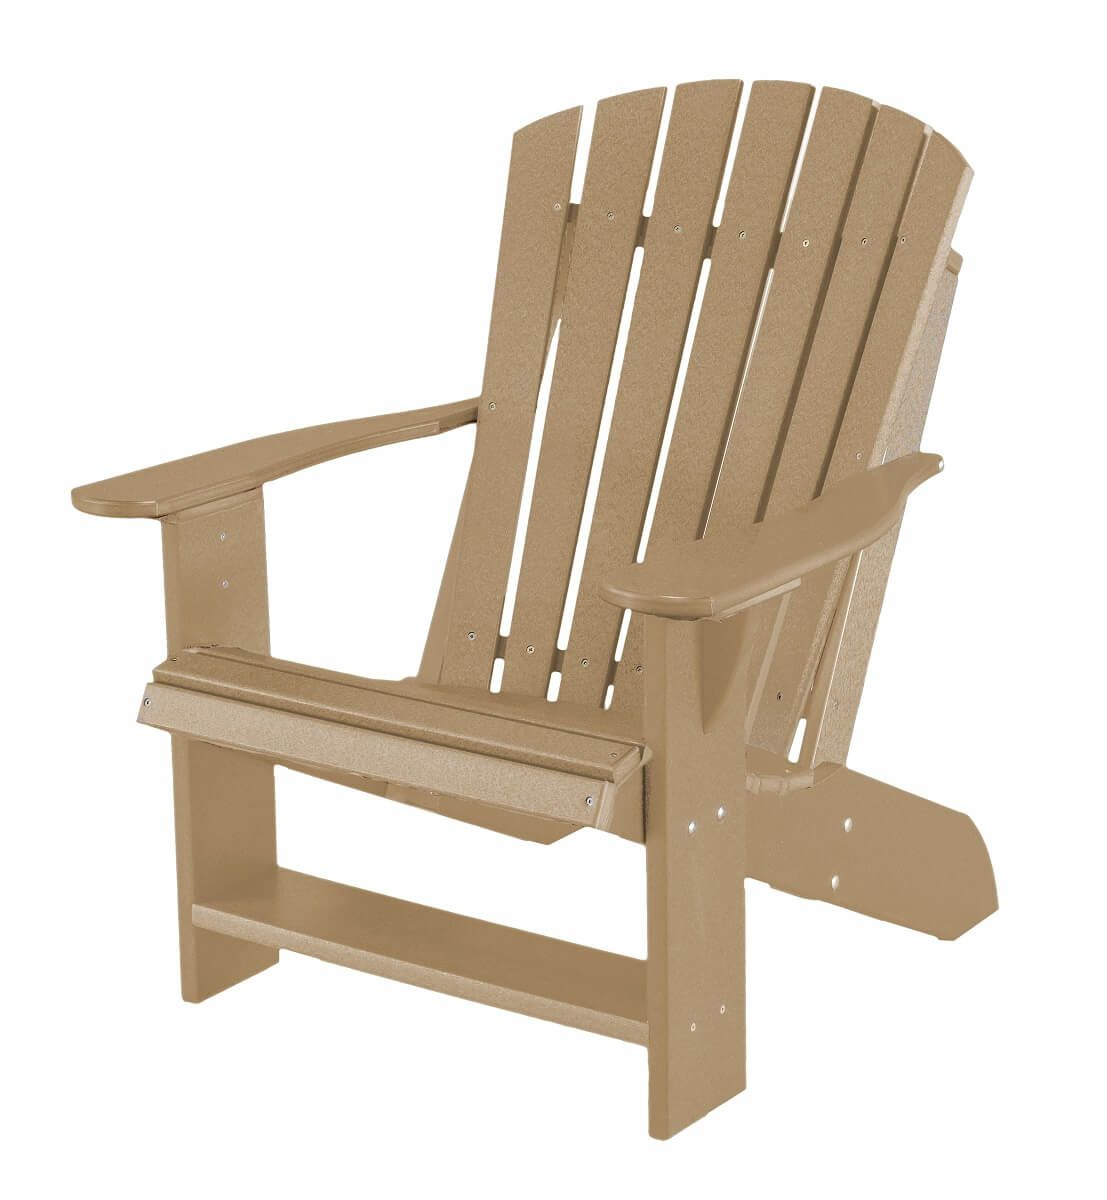 Weathered Wood Sidra Adirondack Chair